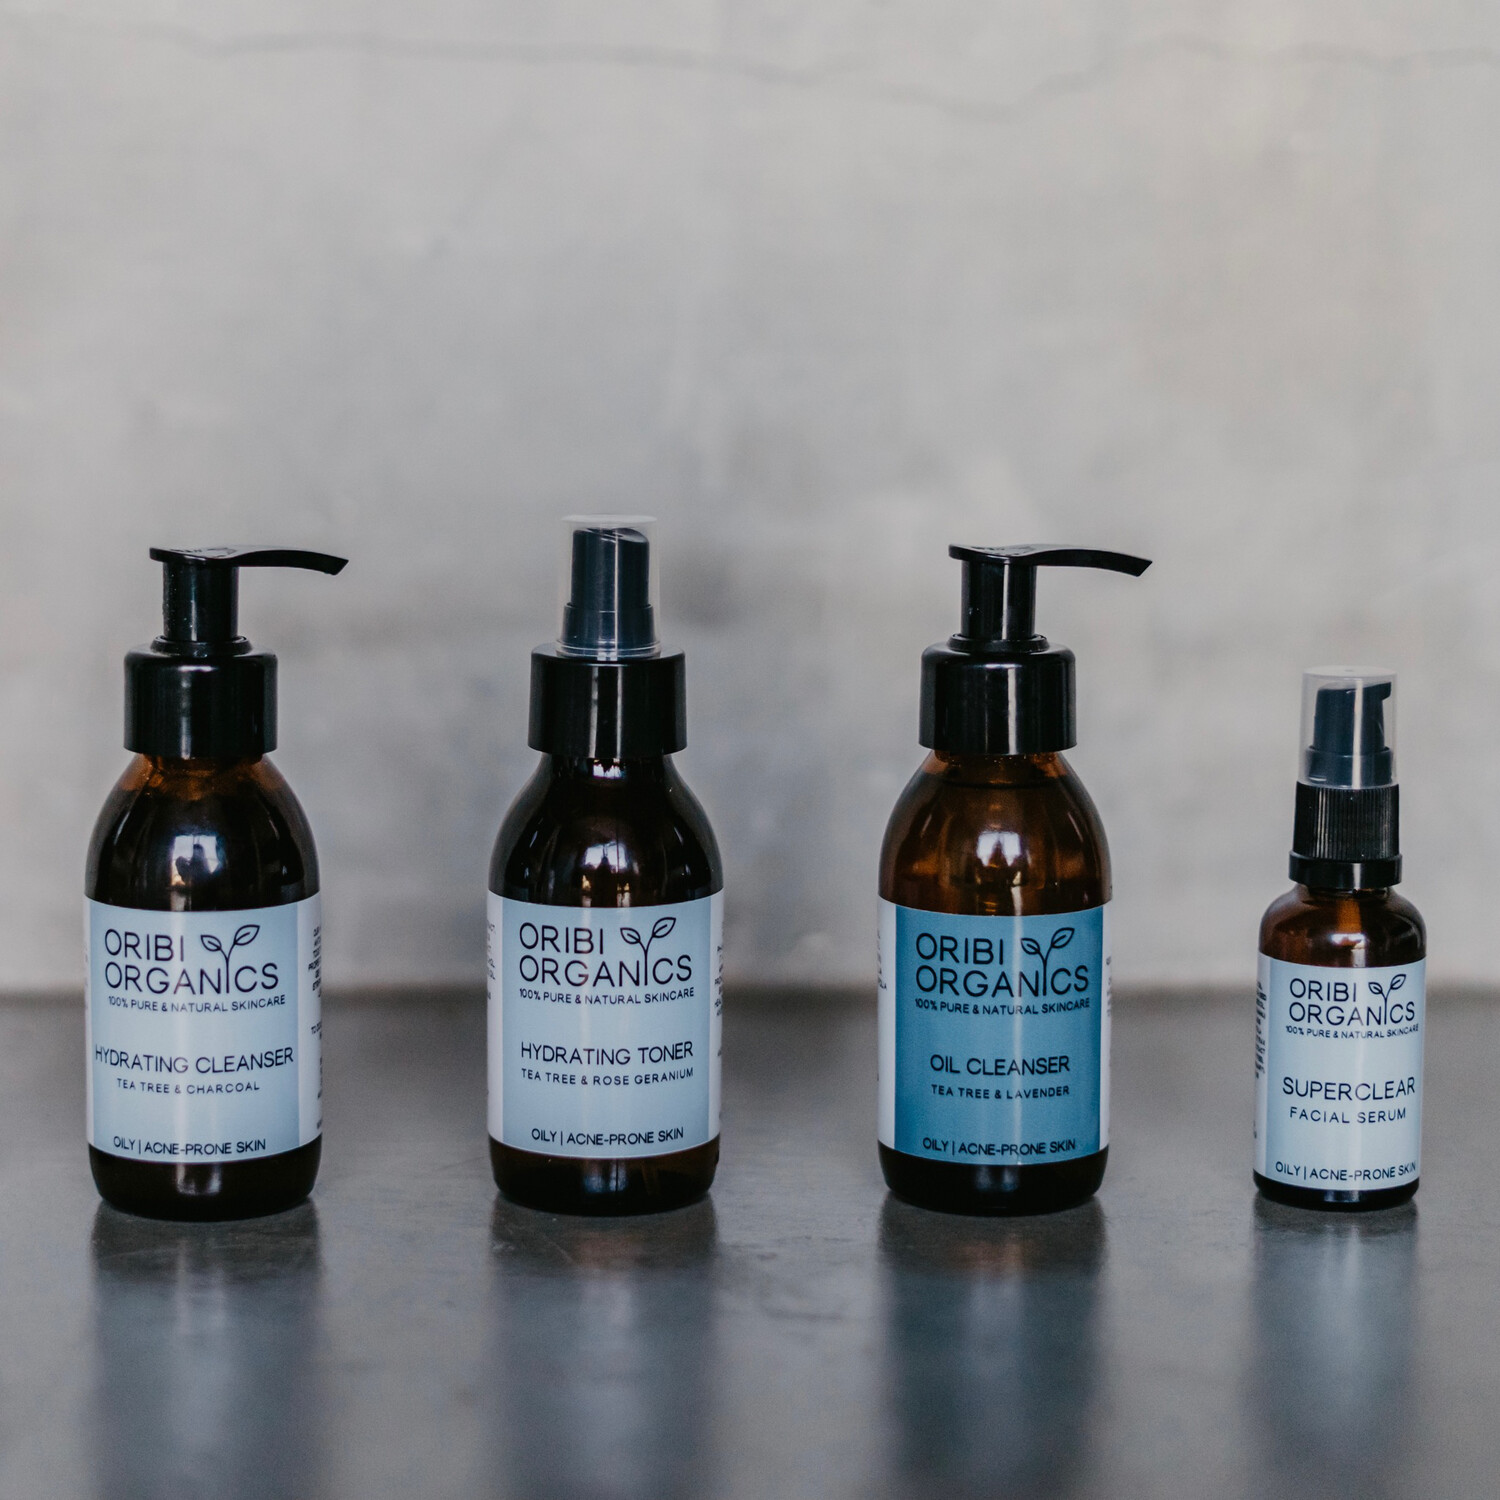 OILY | ACNE-PRONE Basic Skincare Collection